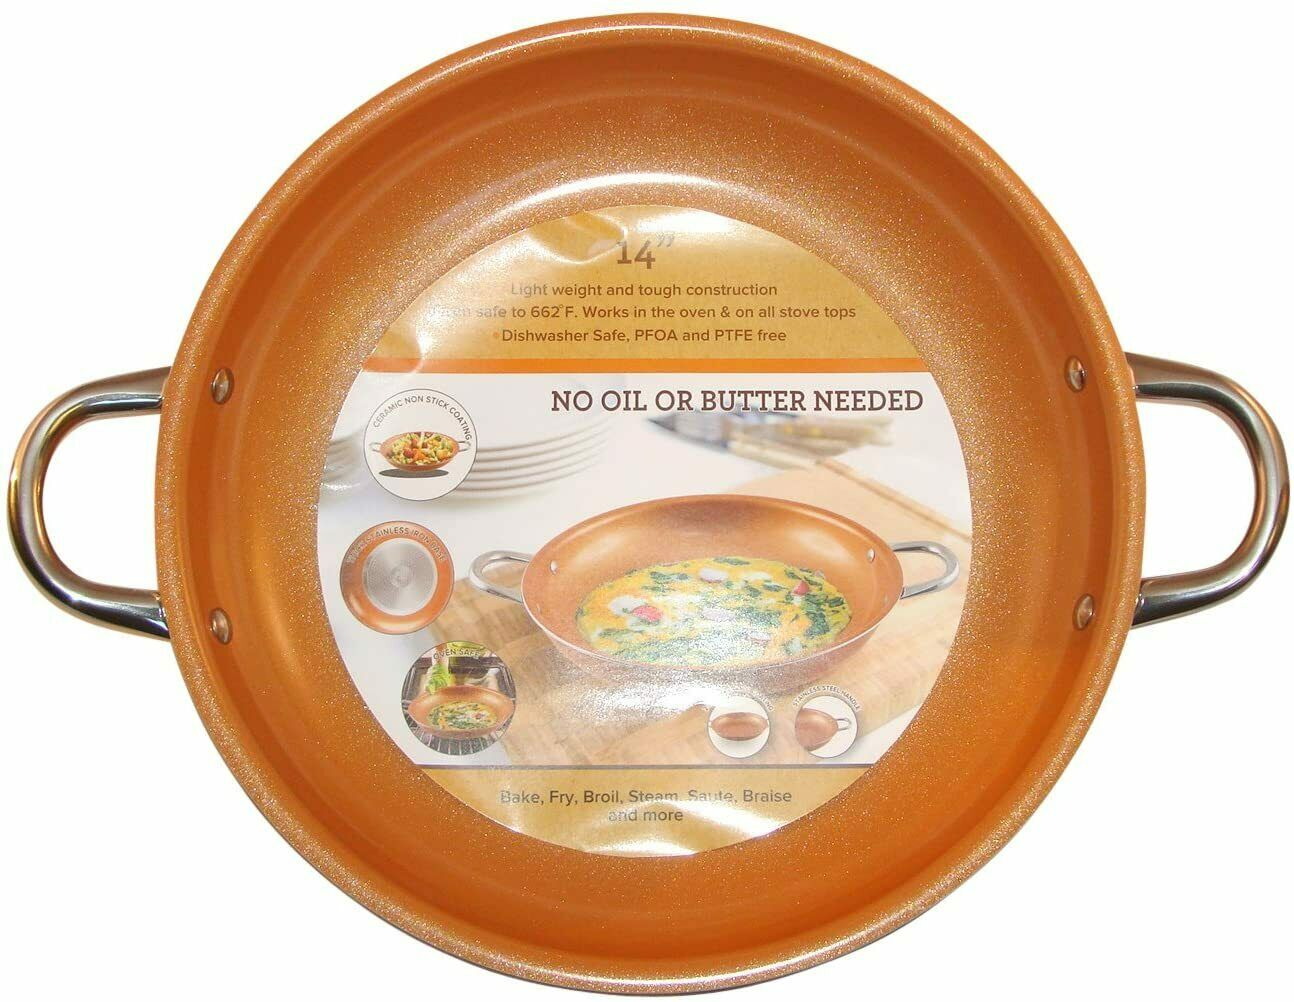 Copper Frying Pan 14-Inch Non Stick Ceramic Infused Titanium Steel Oven Safe - $60.25